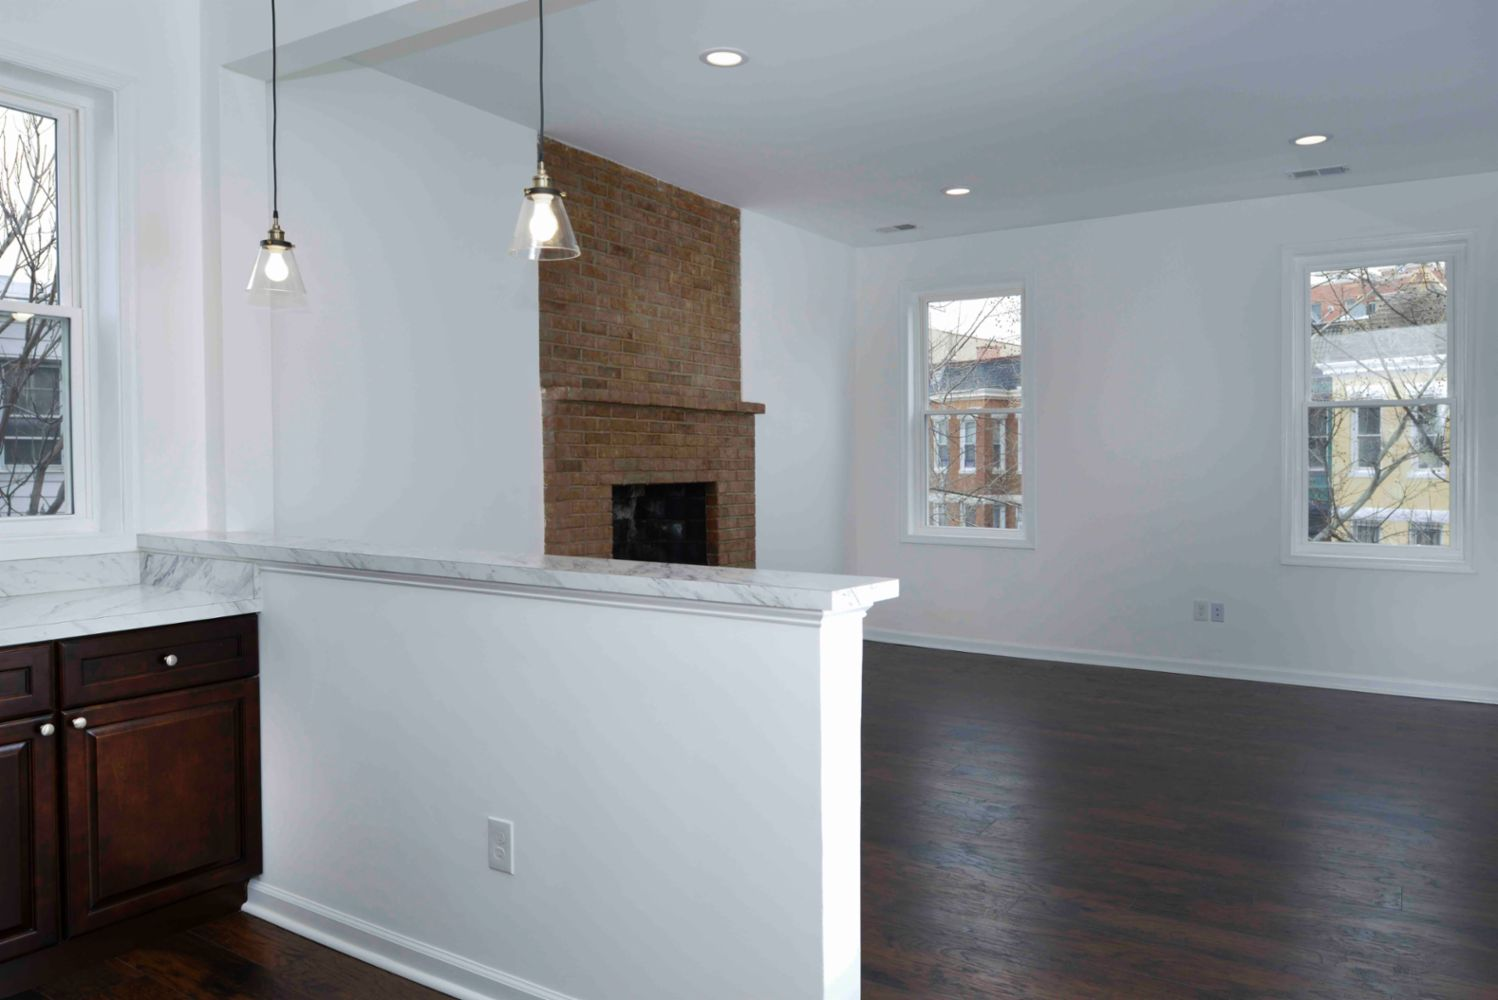 General Contractor Design Build Award Wining in Washington, DC ...